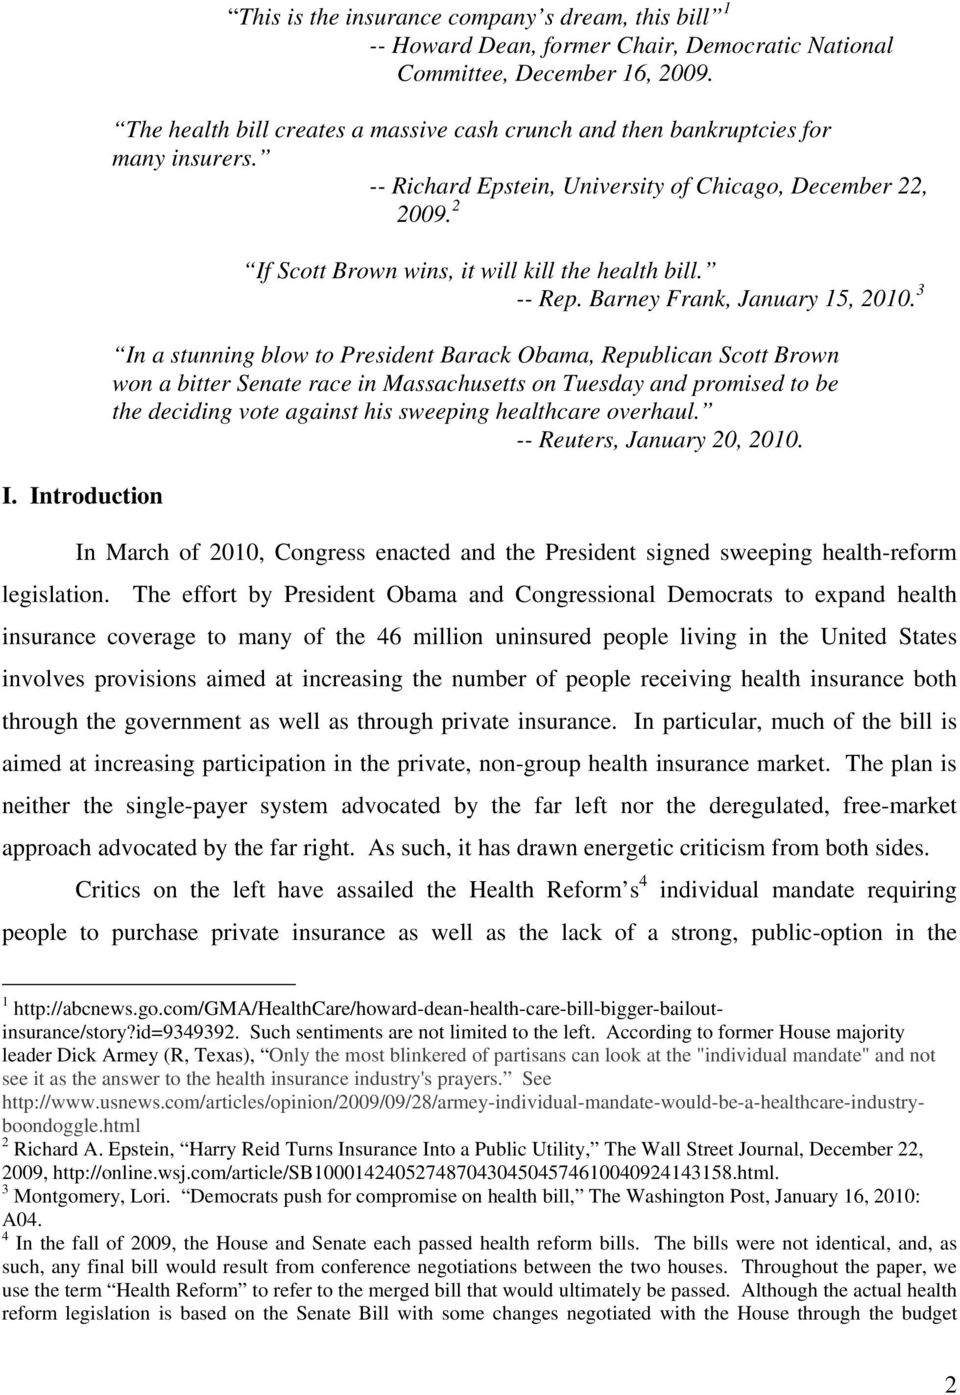 2 If Scott Brown wins, it will kill the health bill. -- Rep. Barney Frank, January 15, 2010.